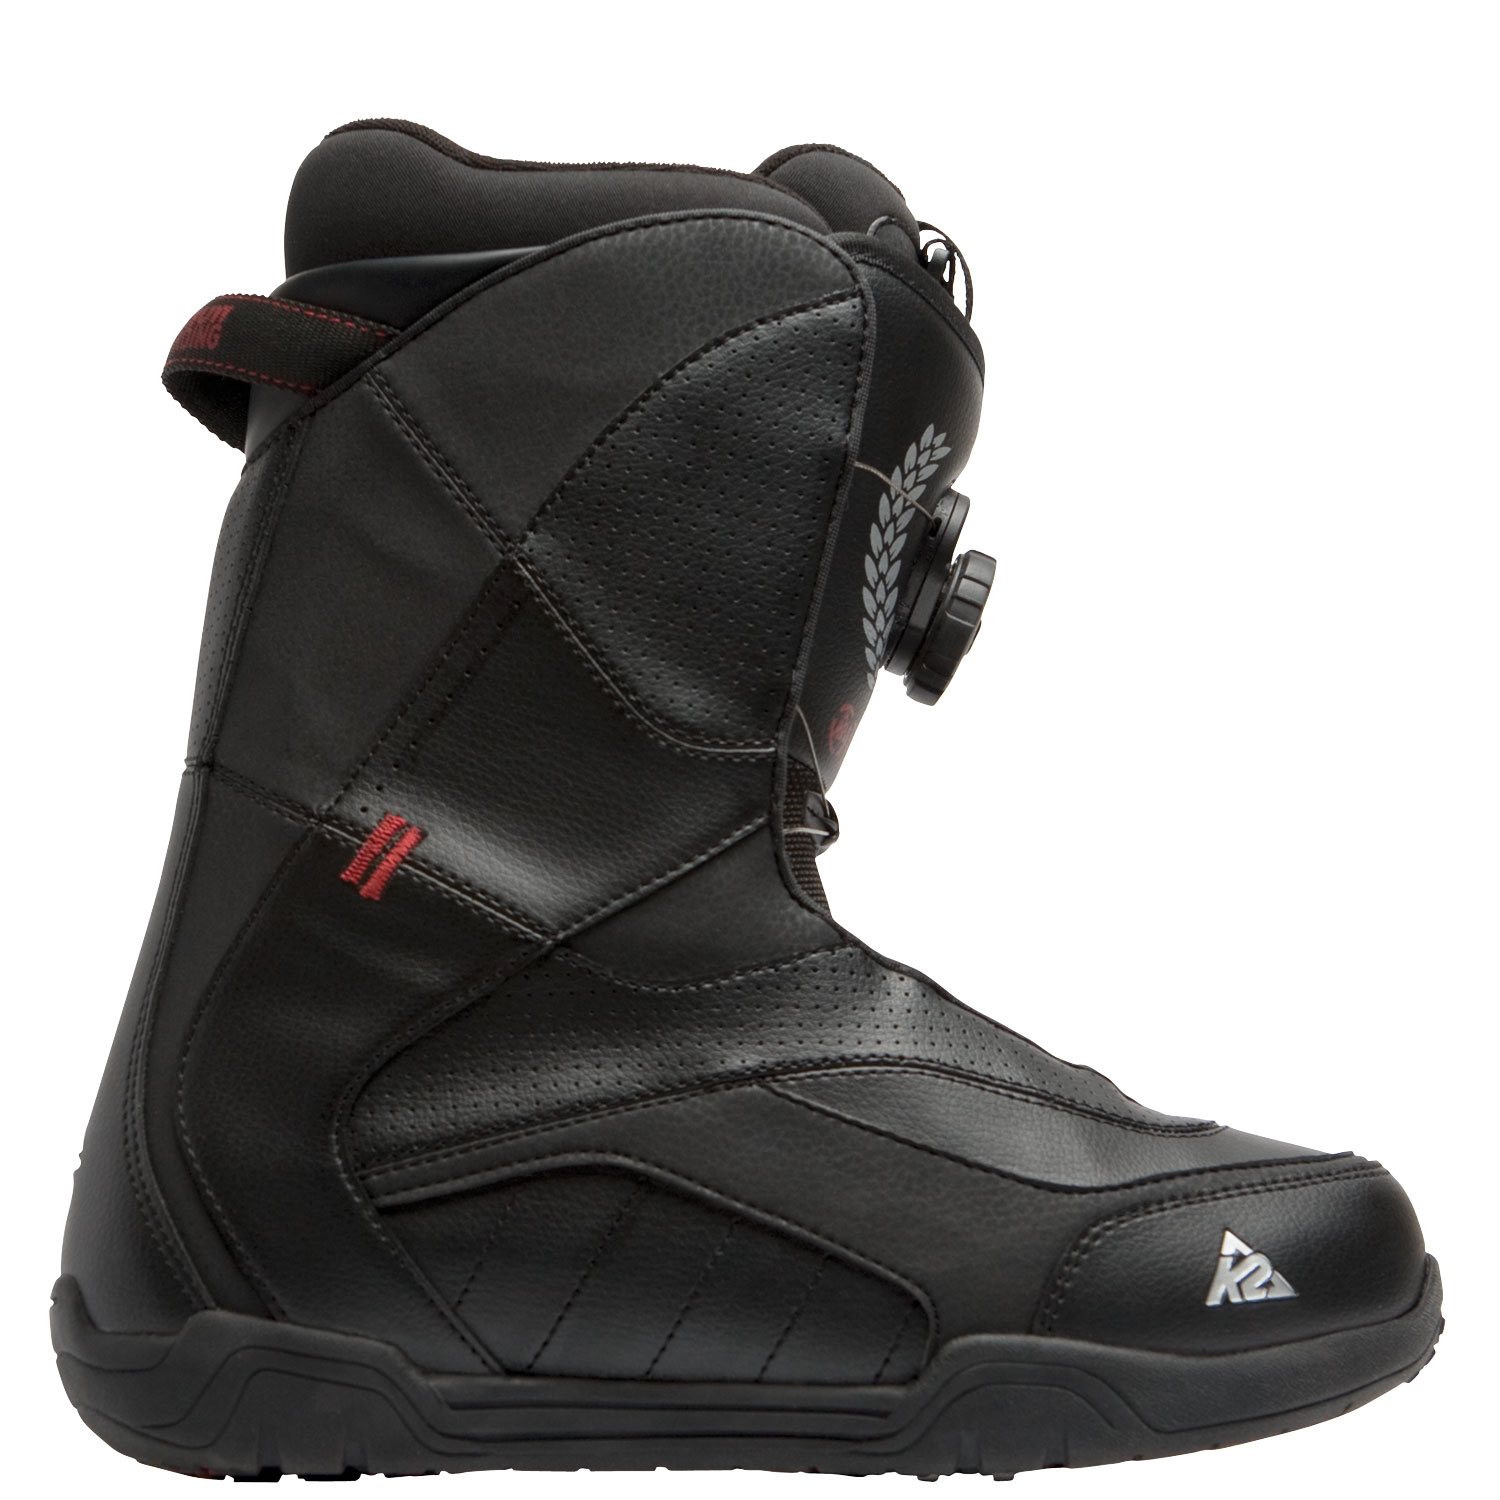 Snowboard The Transit rider boots from K2 does it all in style. Combining trickled down tech and Boa lacing ease, the Transit Boa kills it on the performance scale without breaking the bank. Offering Maximum technology to both beginners and advanced refers, the Transit Boa is fast, and comfortable and ready to take your riding to the next level. A full synthetic upper liner makes for a responsive and comfortable whether they are fresh from the box or on their third season. The Fast-in single pull liner entry system takes it to even higher levels of ease and great-fit performance. Key Features of the K2 Transit BOA Snowboard Boots:  Liner: Intuition Comfort Foam 3D Thermo-form Ultralon liner, Aegis Anti Microbial  Liner Fit: Internal J Bars  Liner Lacing: Fast-In Single Pull System  Footbed: EVA Insole  Sole: NEW! Low-Pro Cupsole  Shell Lacing: BOA H2 Standard System - $101.95